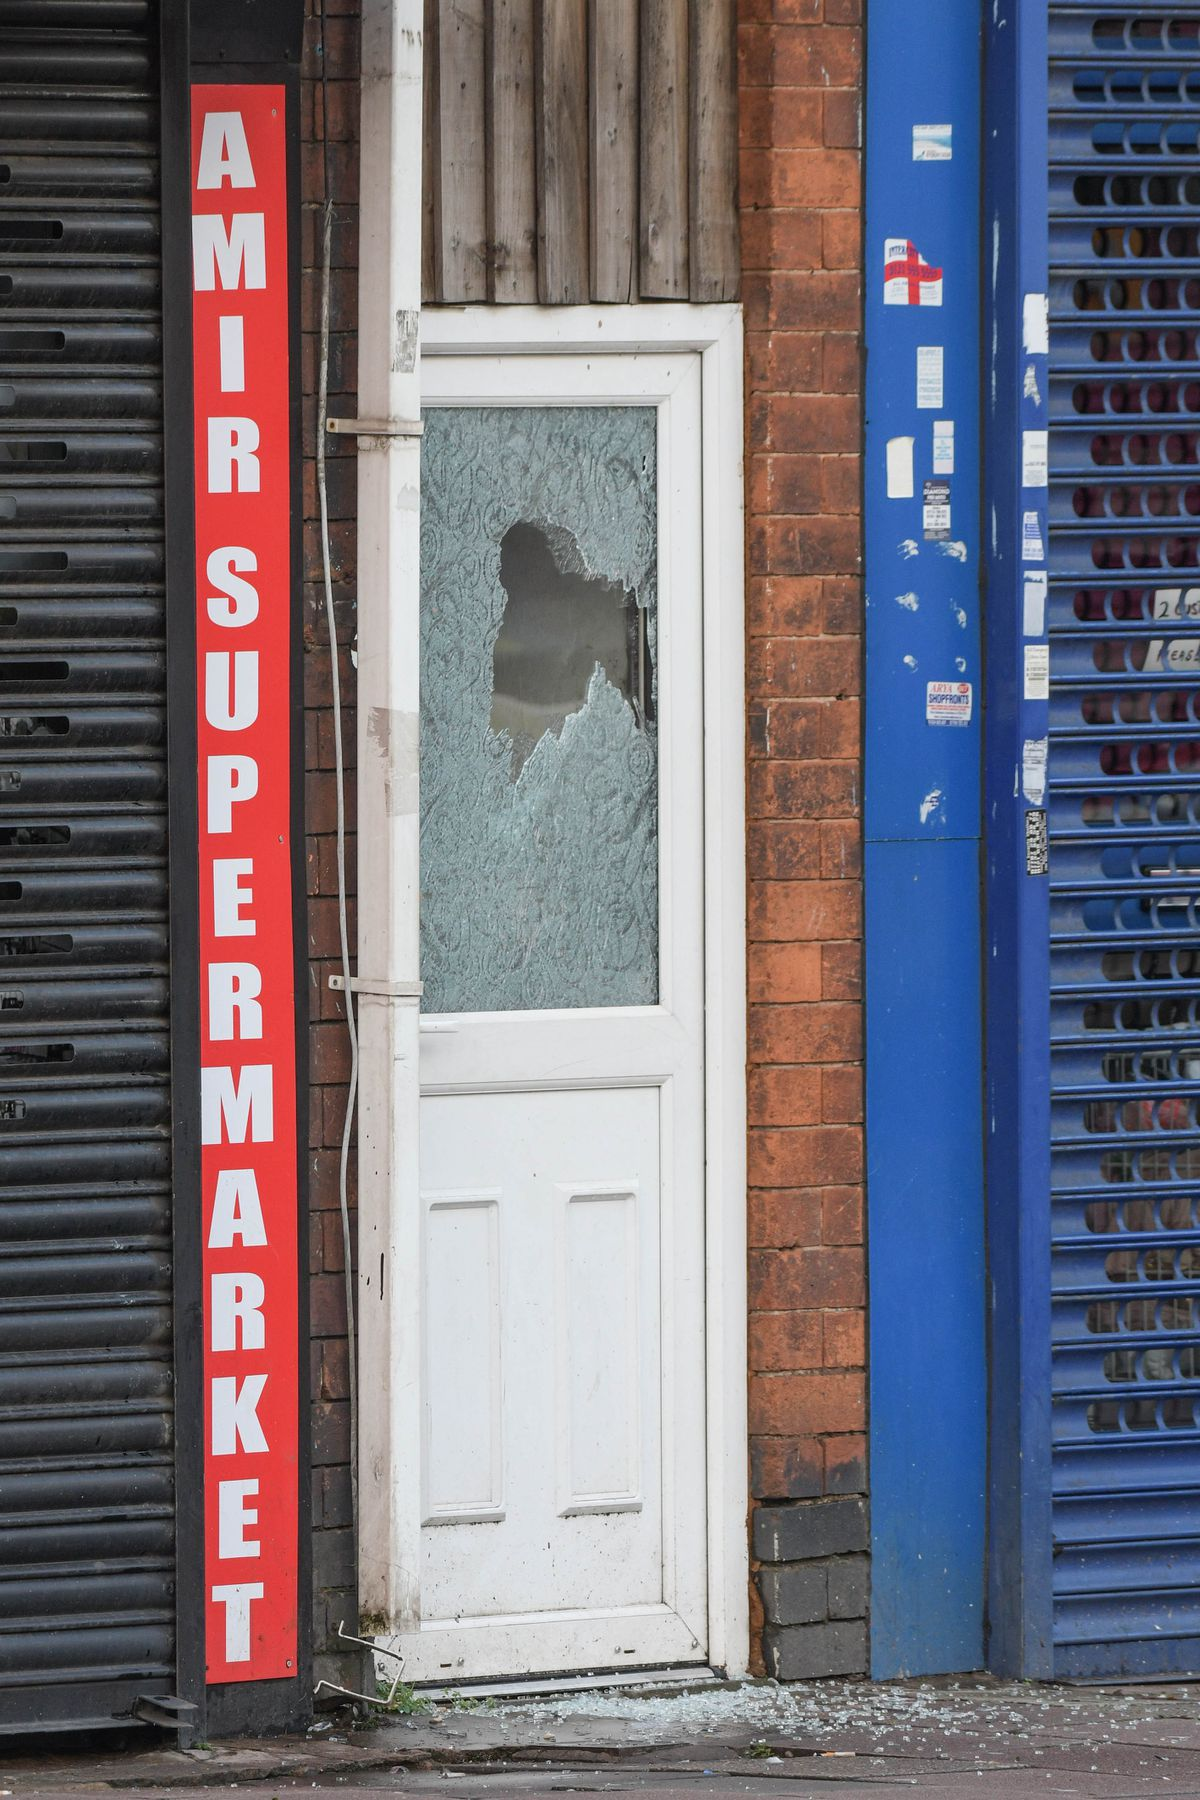 A shattered glass panel in a door. Photo: SnapperSK.